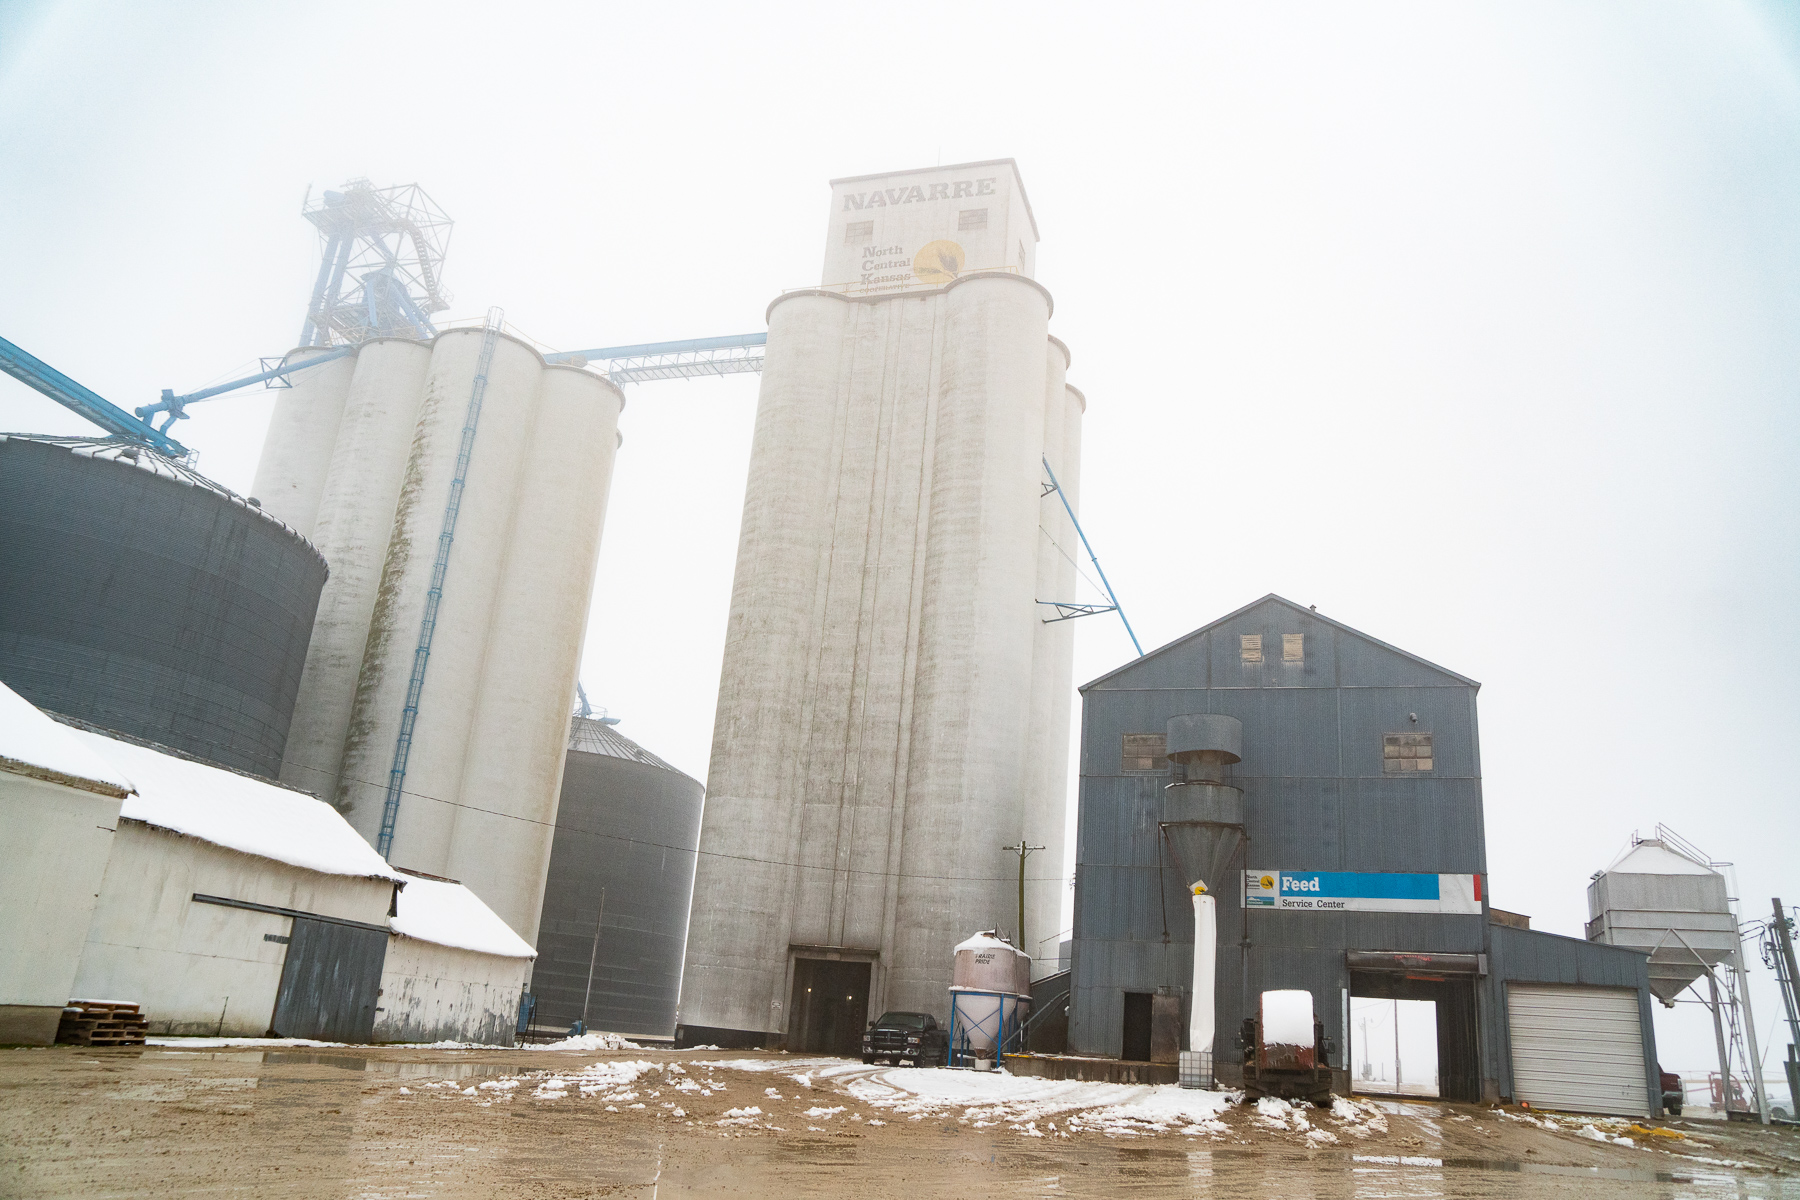 The grain elevator in Navarre, part of Agri Trails Cooperative, where Casey Shardein worked in the grain mill, right, in January 2019.